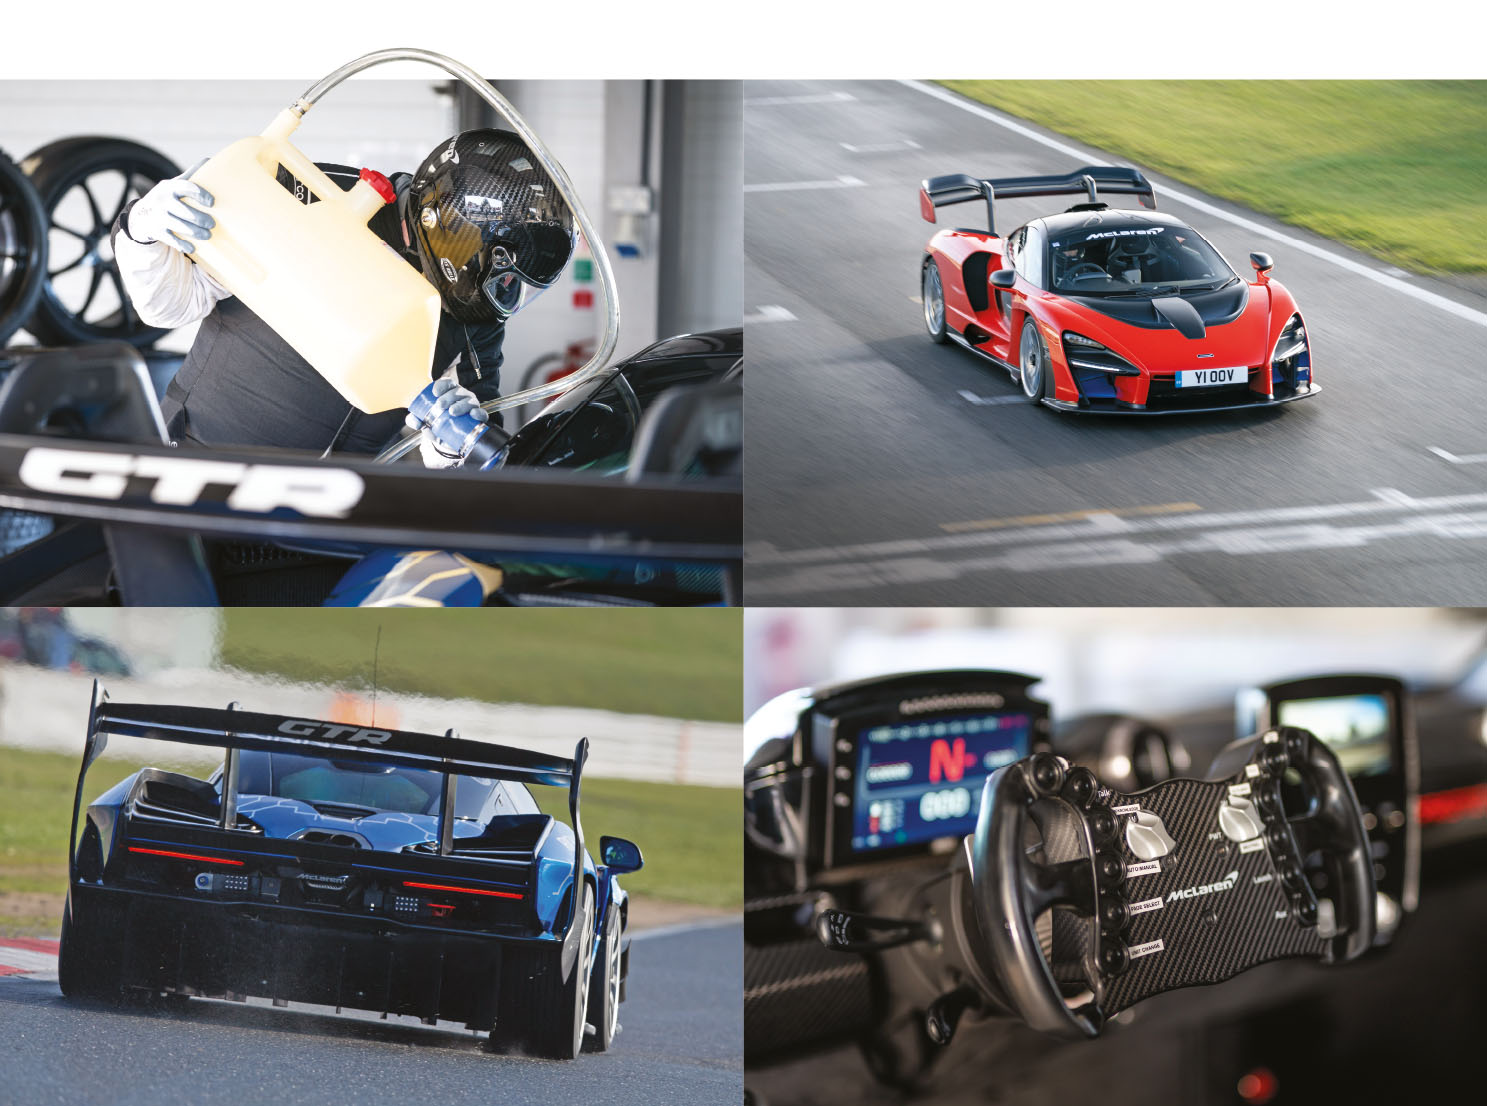 Frankel learned the circuit in the 'normal' Senna road car (top, right) before being unleashed in the GTR